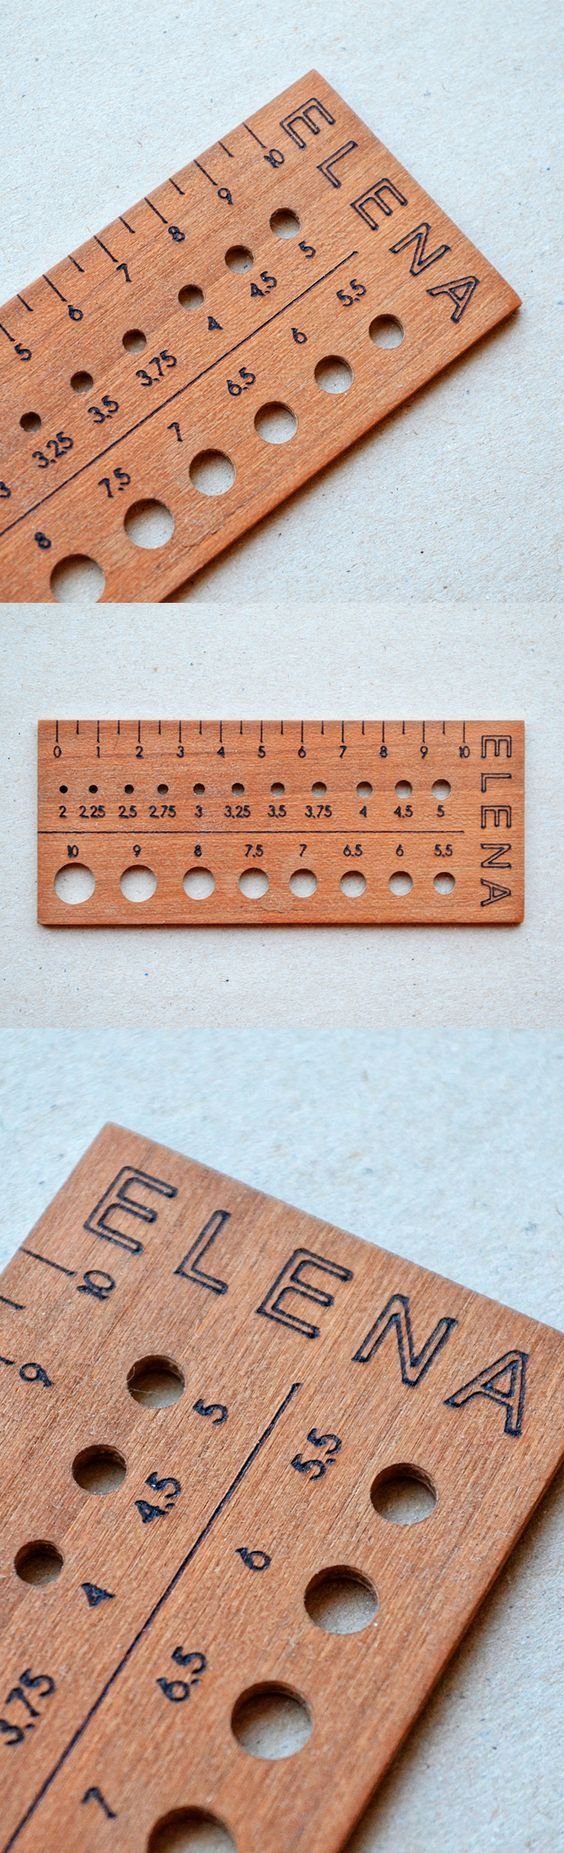 custom wooden knitting needle gauge with your personal text or name on it